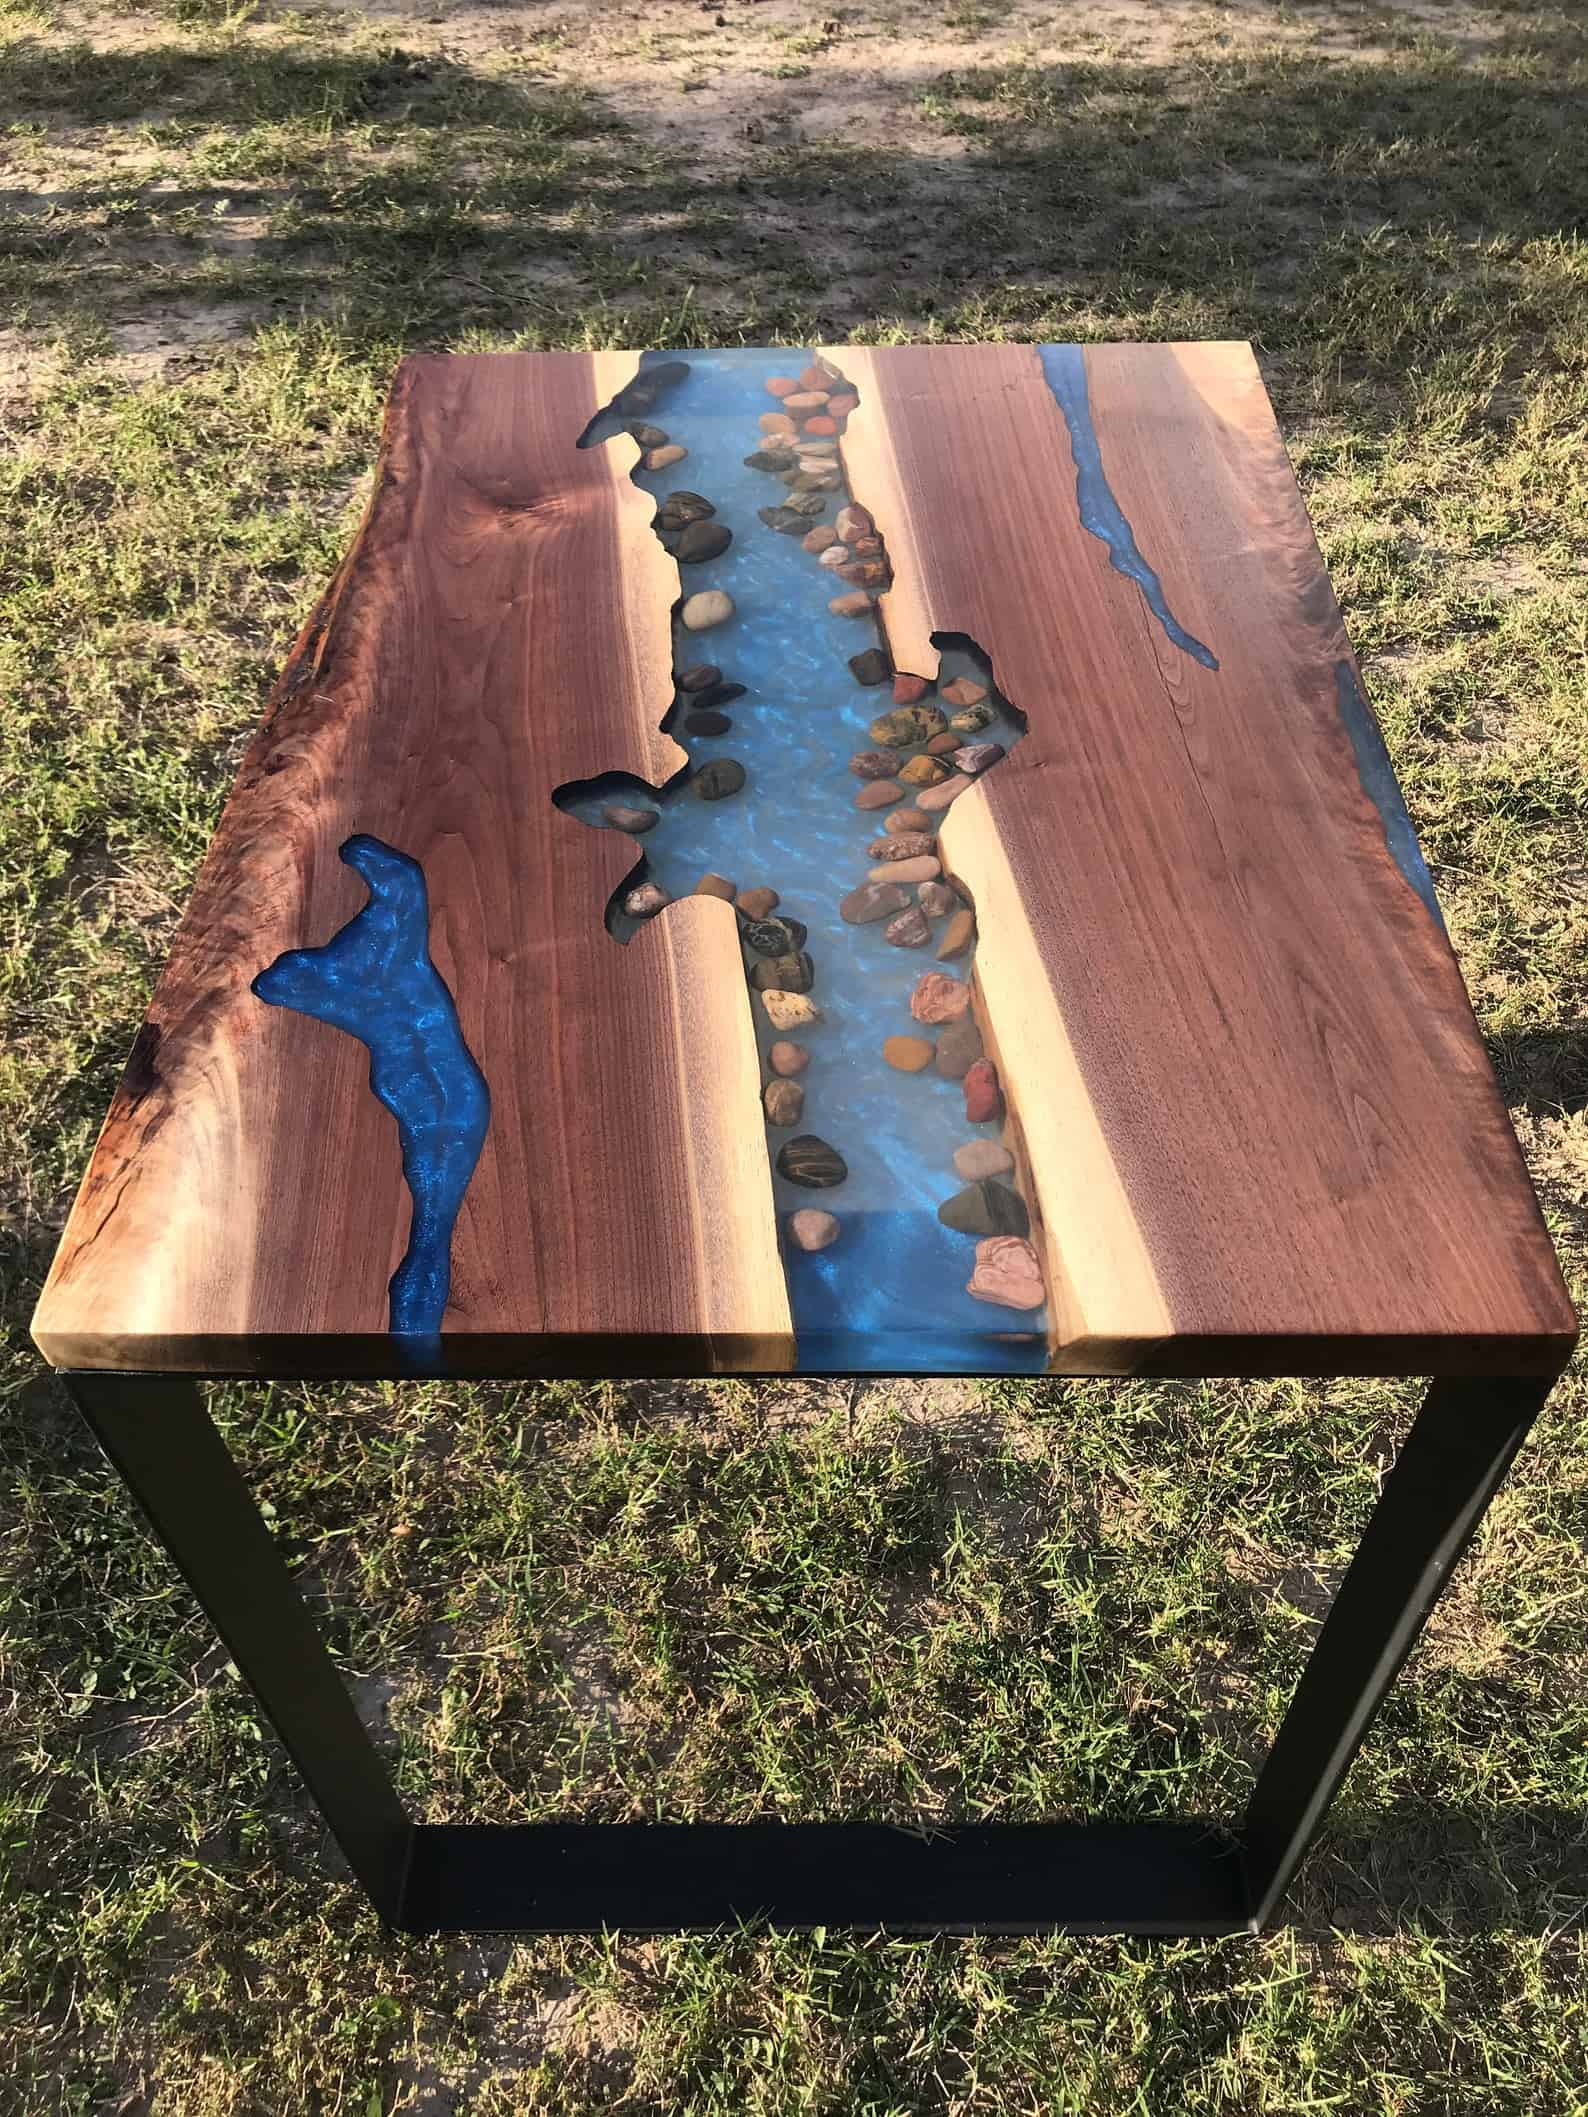 Live edge river table with stones